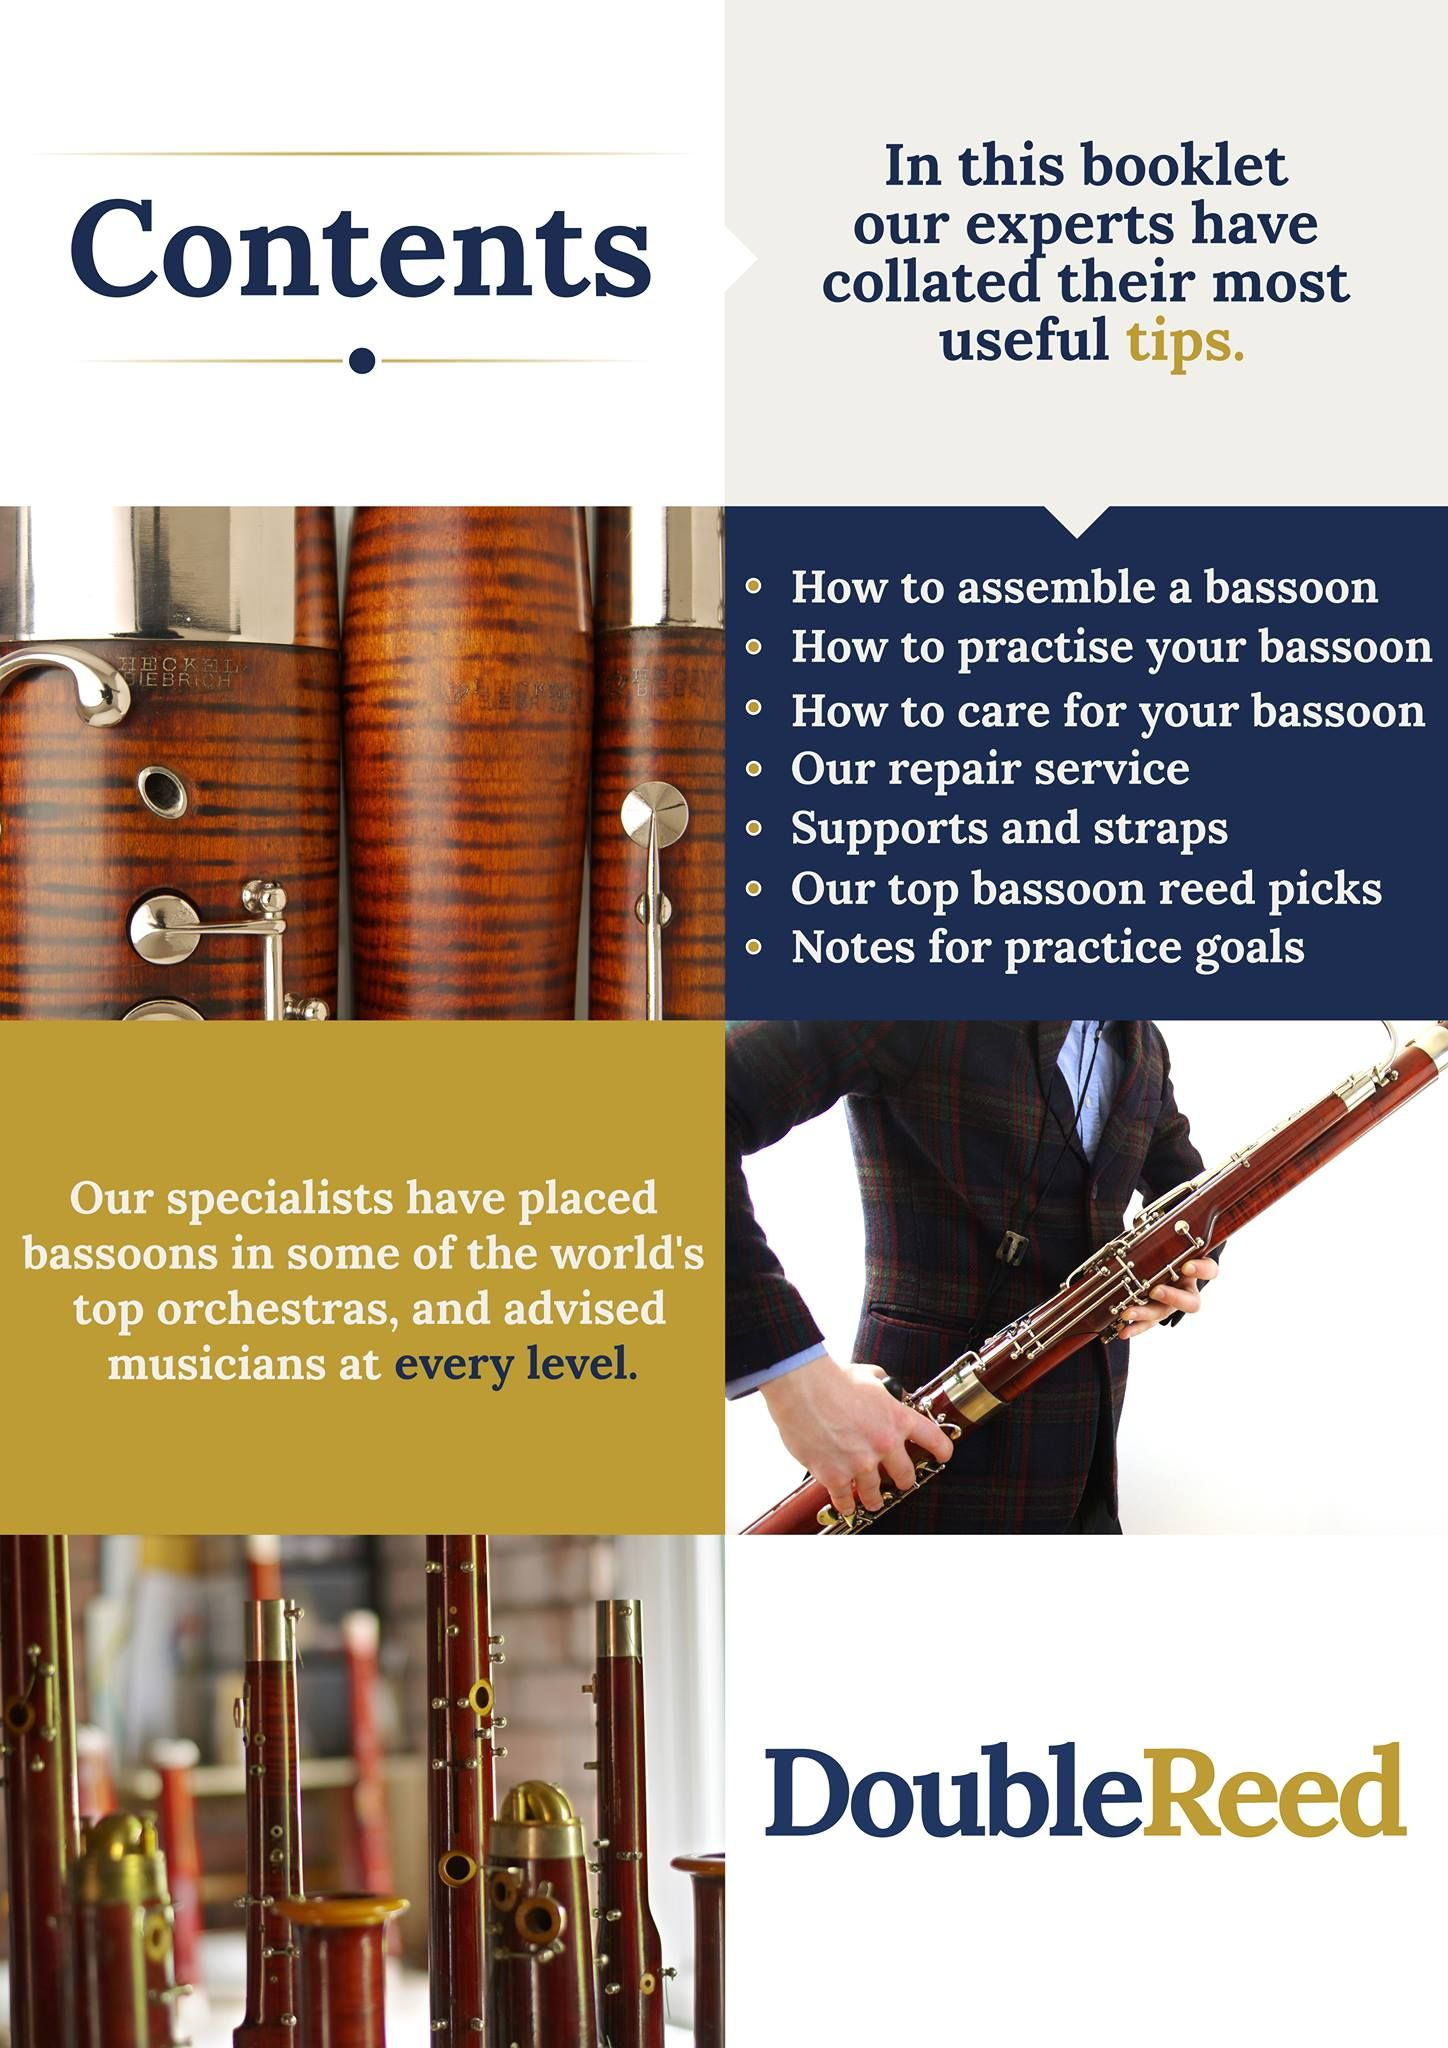 Download 'The Double Reed Bassoon Guide'  Our specialists